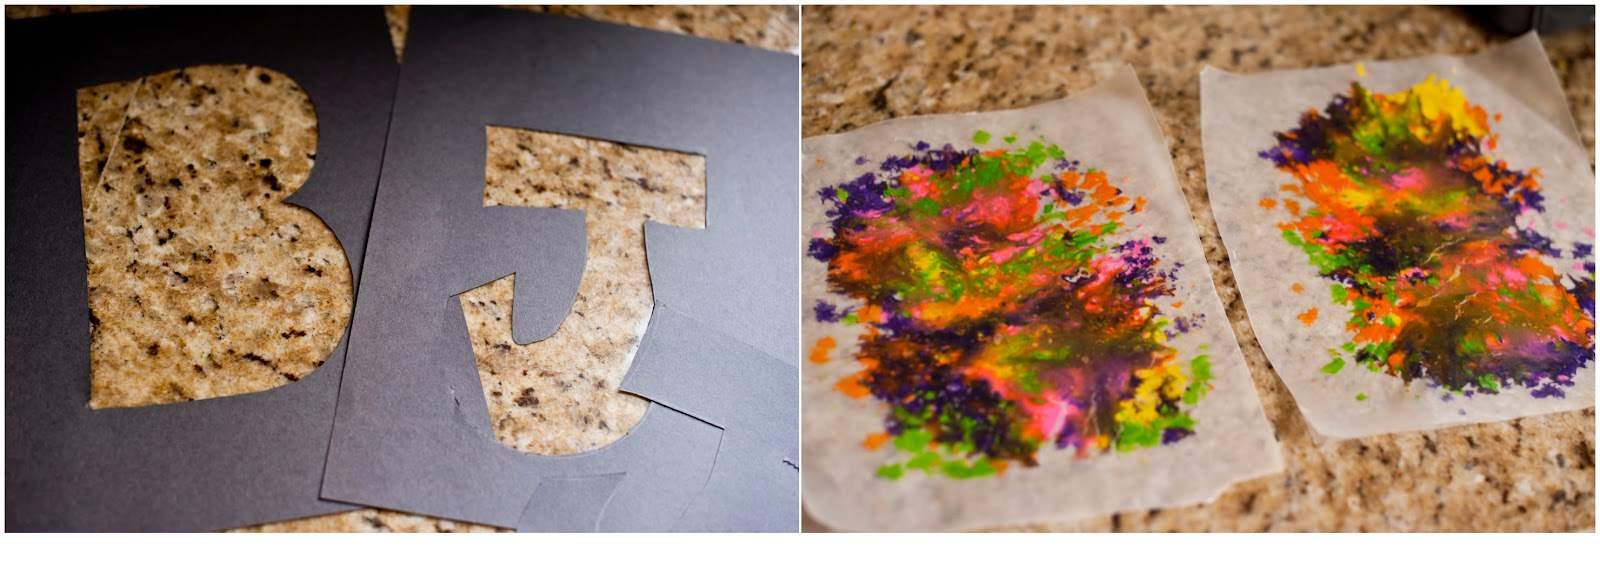 Think Outside the Toy Box Summer Series: Wax Paper Letter Art